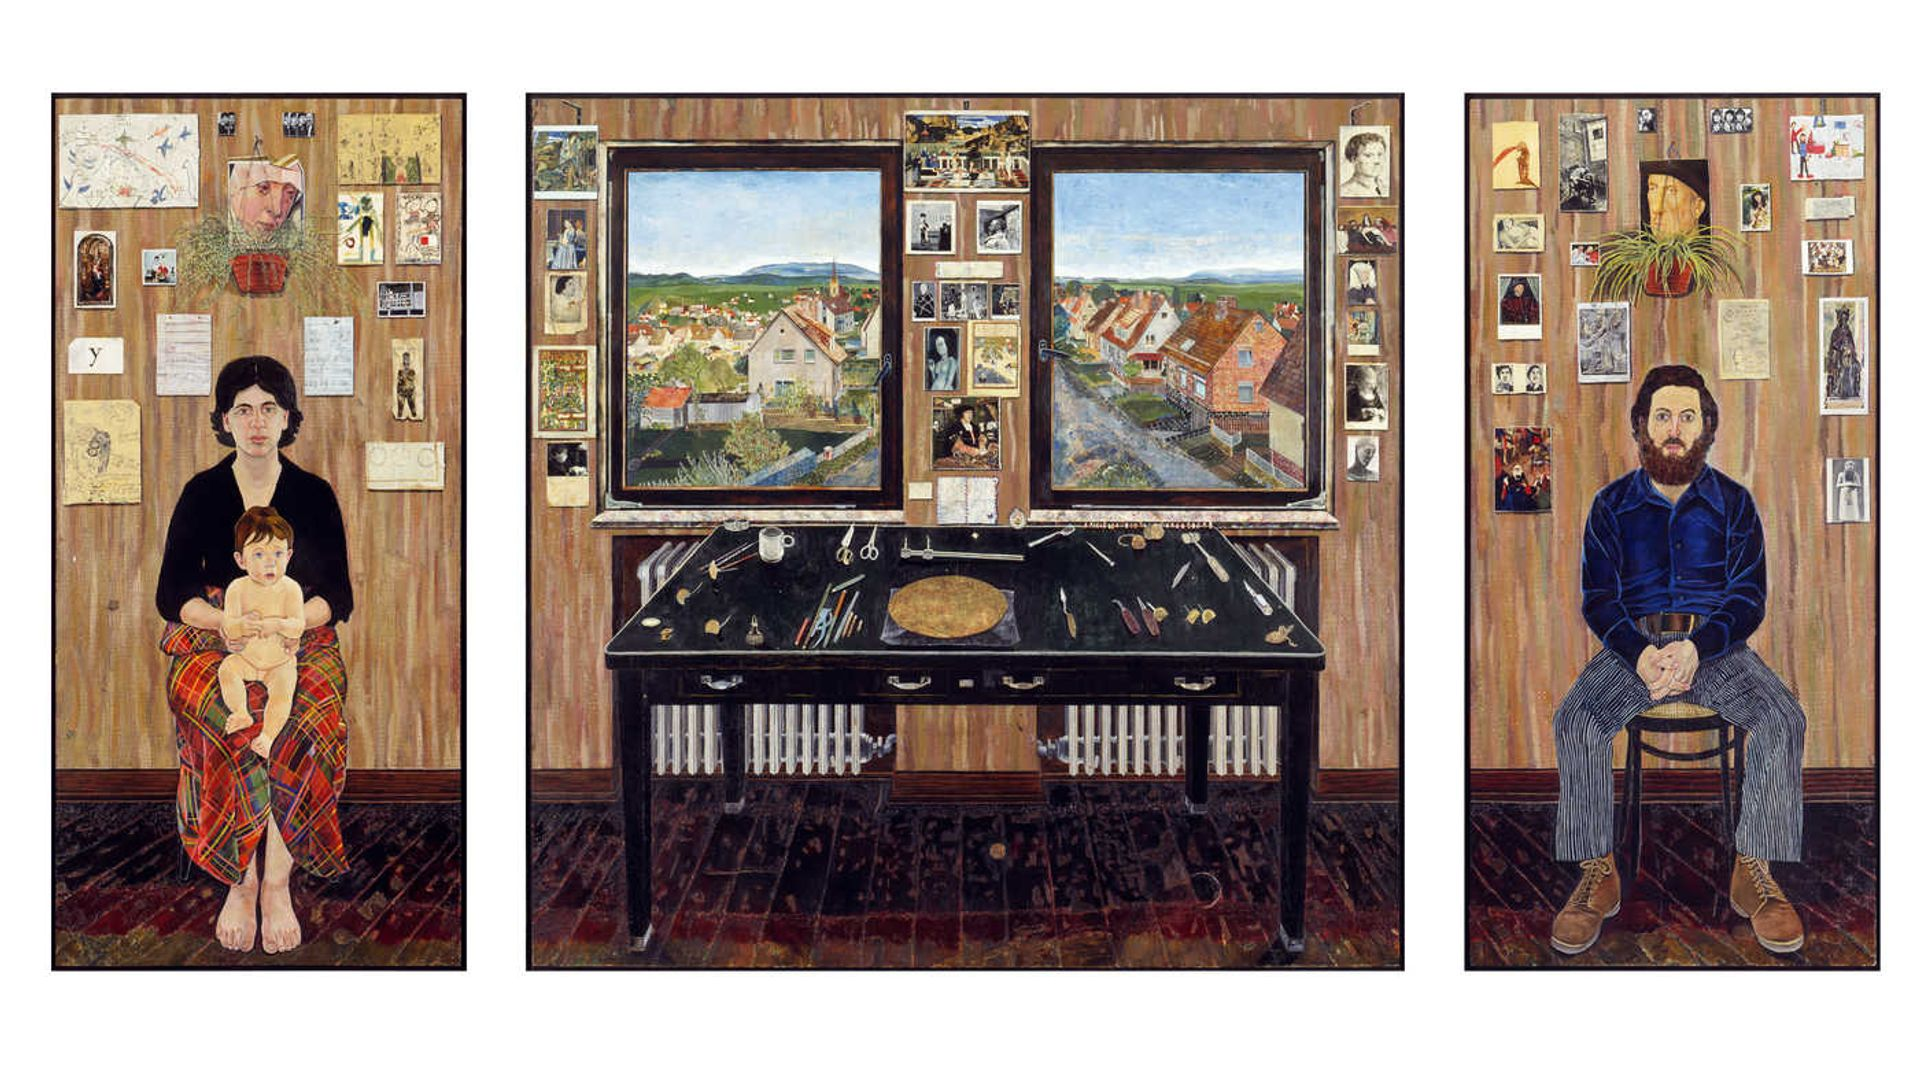 Simon Dinnerstein, The Fulbright Triptych (1971‐74) Collection of the Palmer Museum of Art, Pennsylvania State University